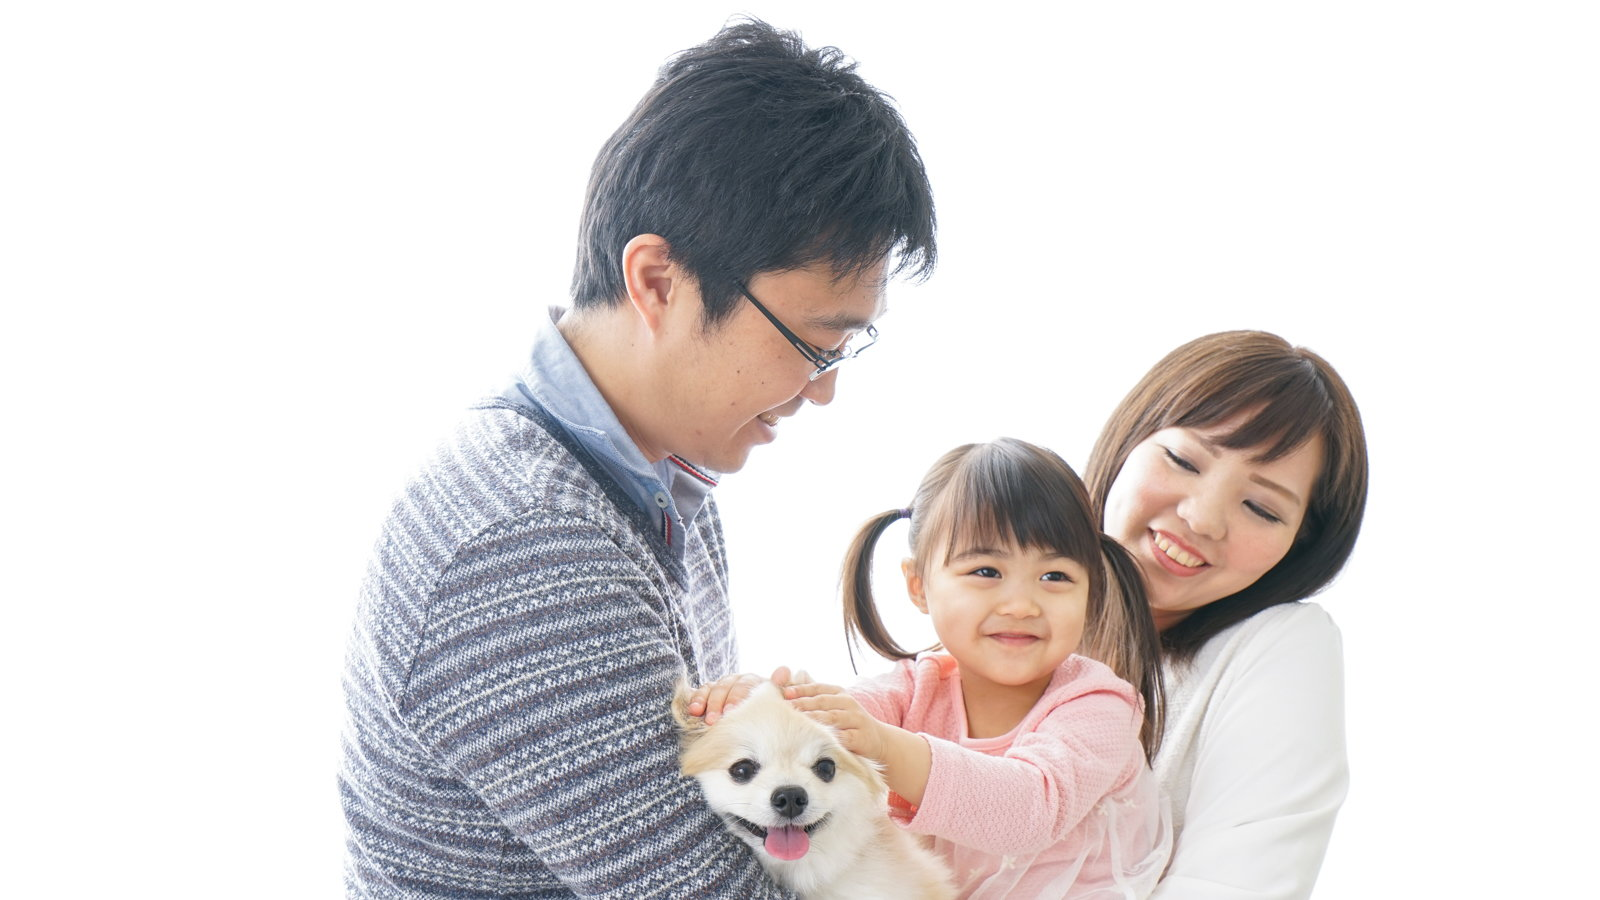 mom and dad holding girl and dog